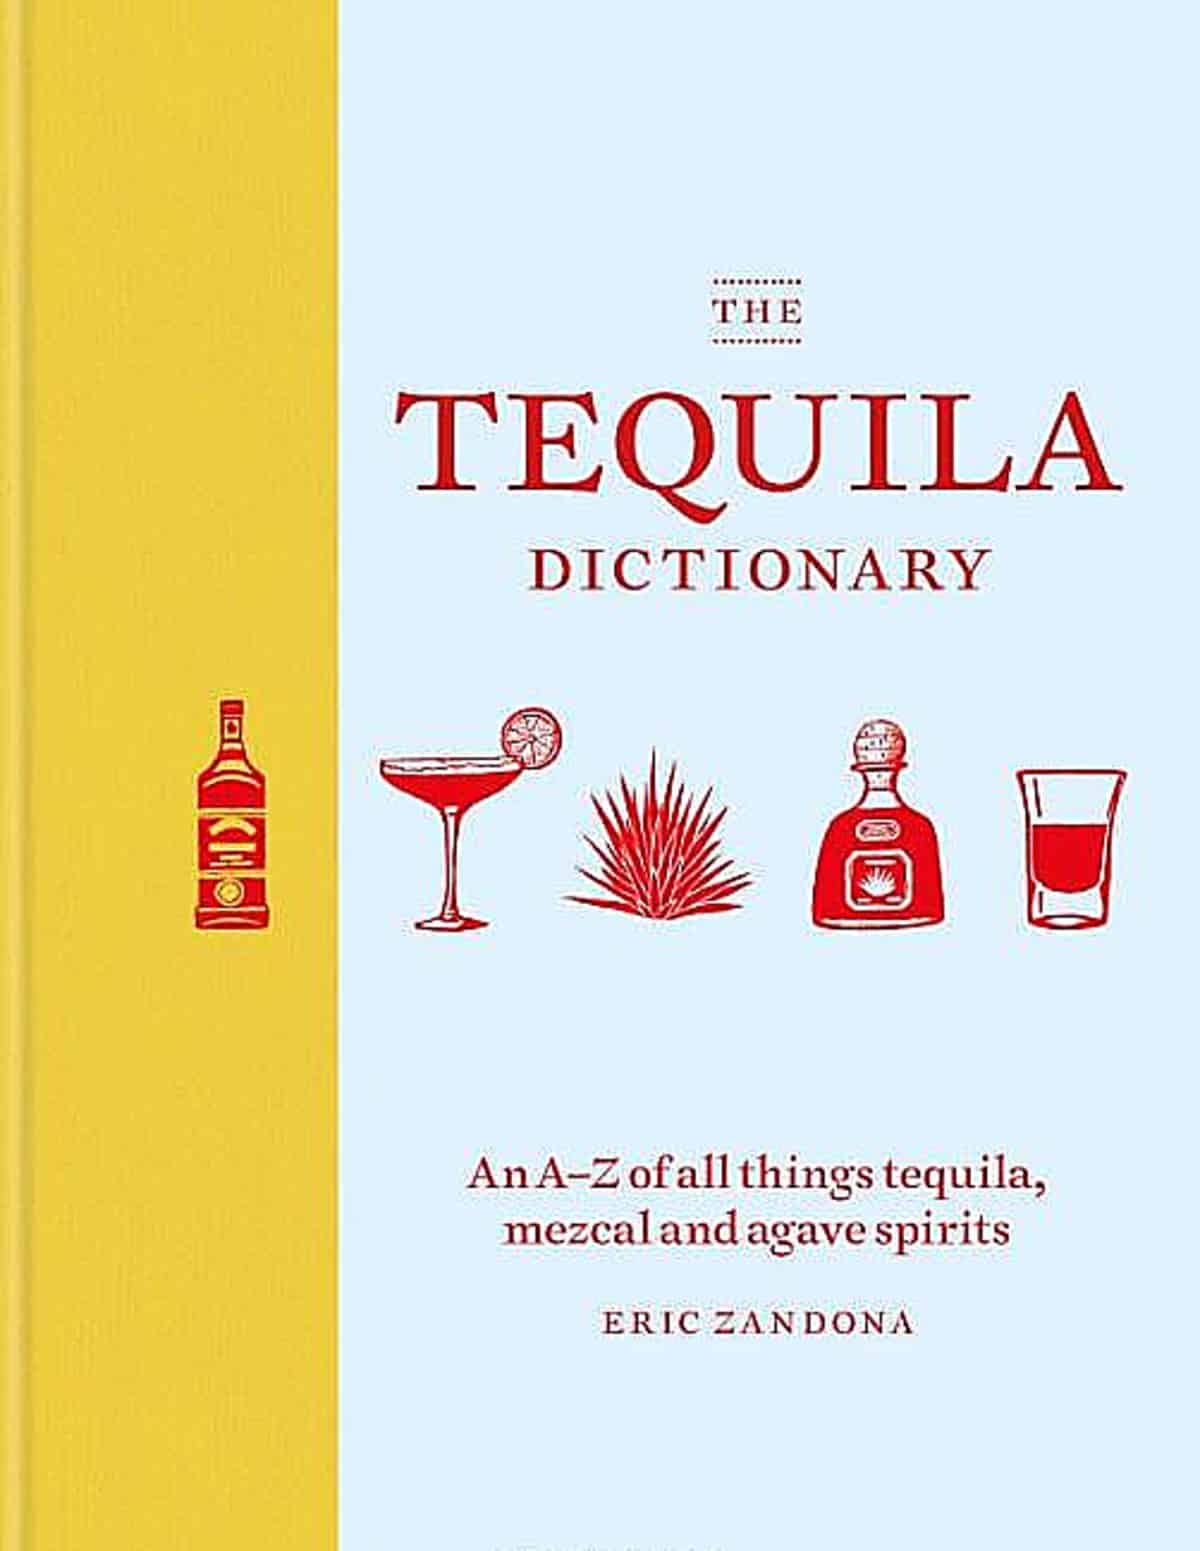 This is the book to get the hardcore tequila fan - pair with a fine bottle of tequila and limes and glasses in a custom gift basket-you're a rockstar friend! Pic credit: Mitchell Beazley